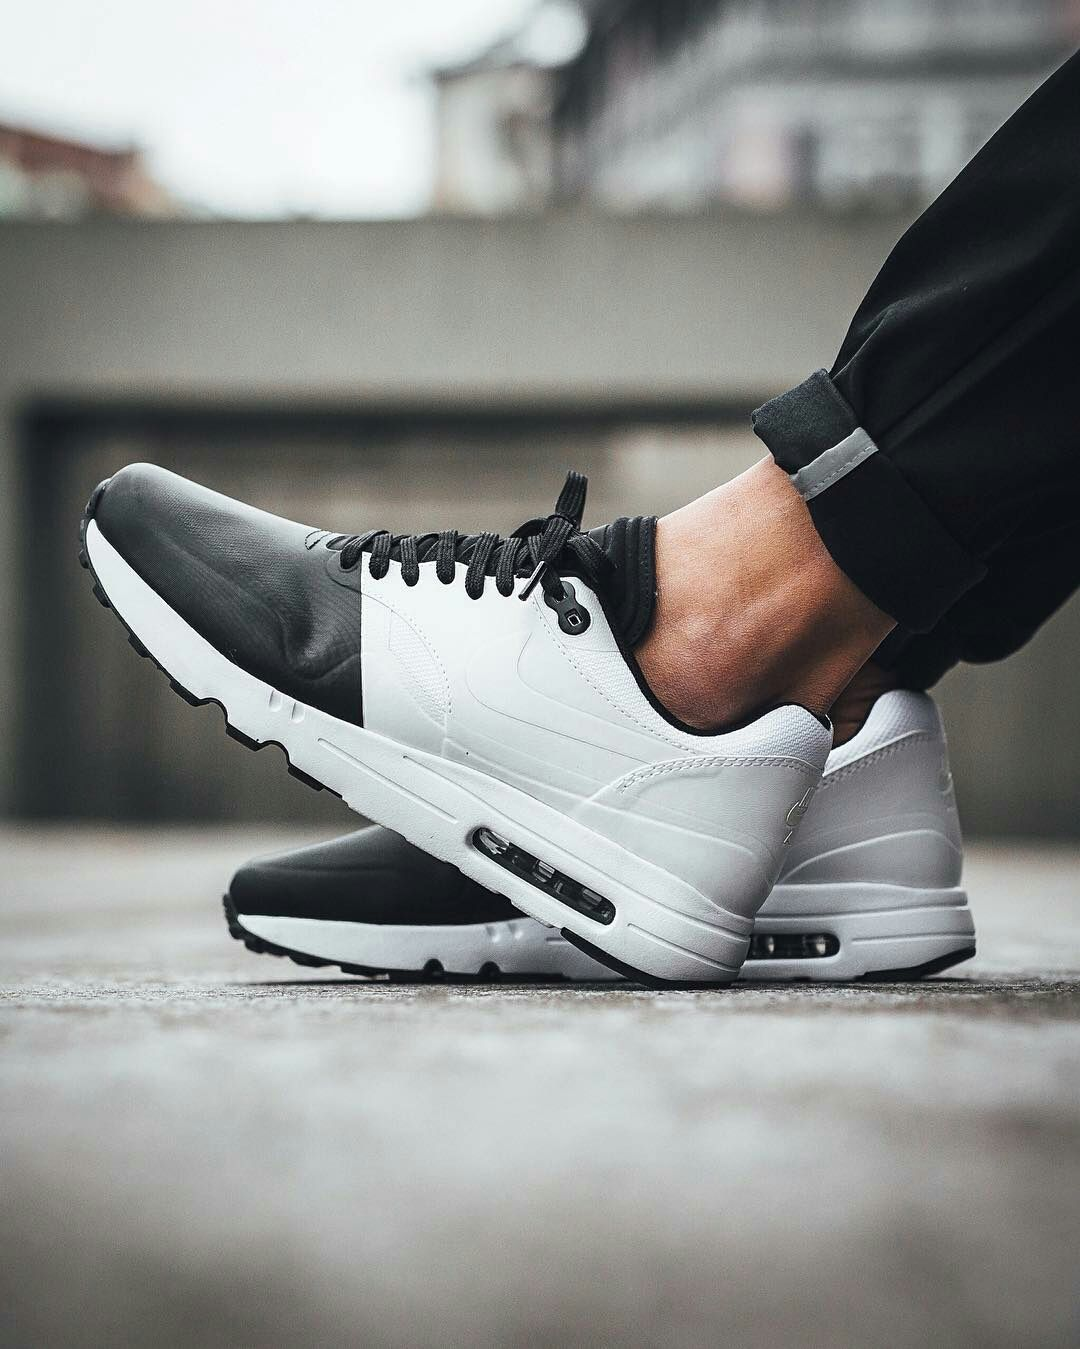 huge selection of a19ae 355aa shoes ,sneaker ,sneakers, kicks, sole ,nike, nikelab ,air max ,air max 1,  am1, flyknit ,blue, swoosh ,fashion ,style ,streetwear ,sporty, ...